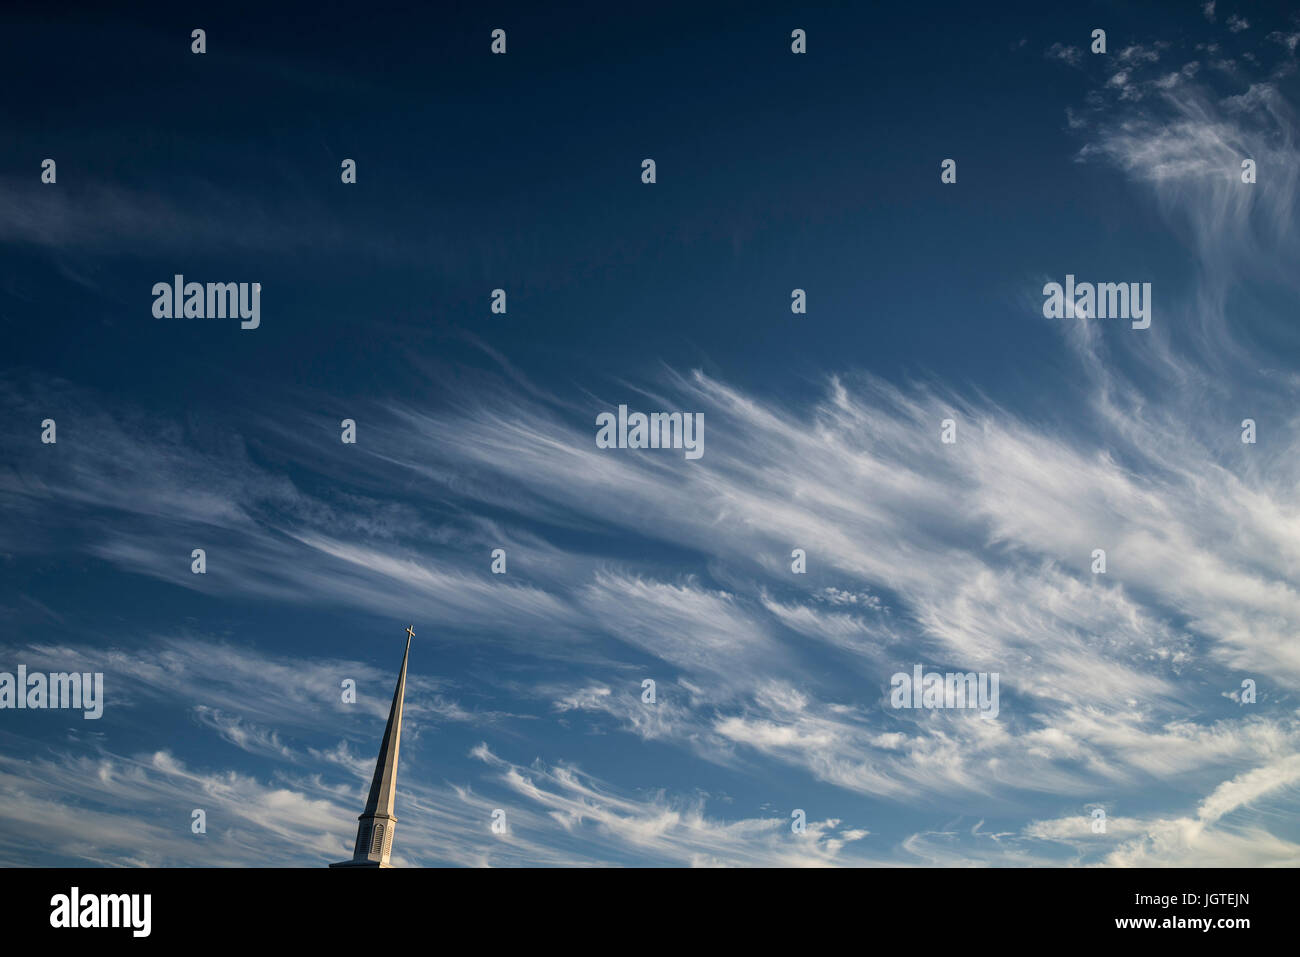 Church steeple with wispy cloud formations as a background. - Stock Image